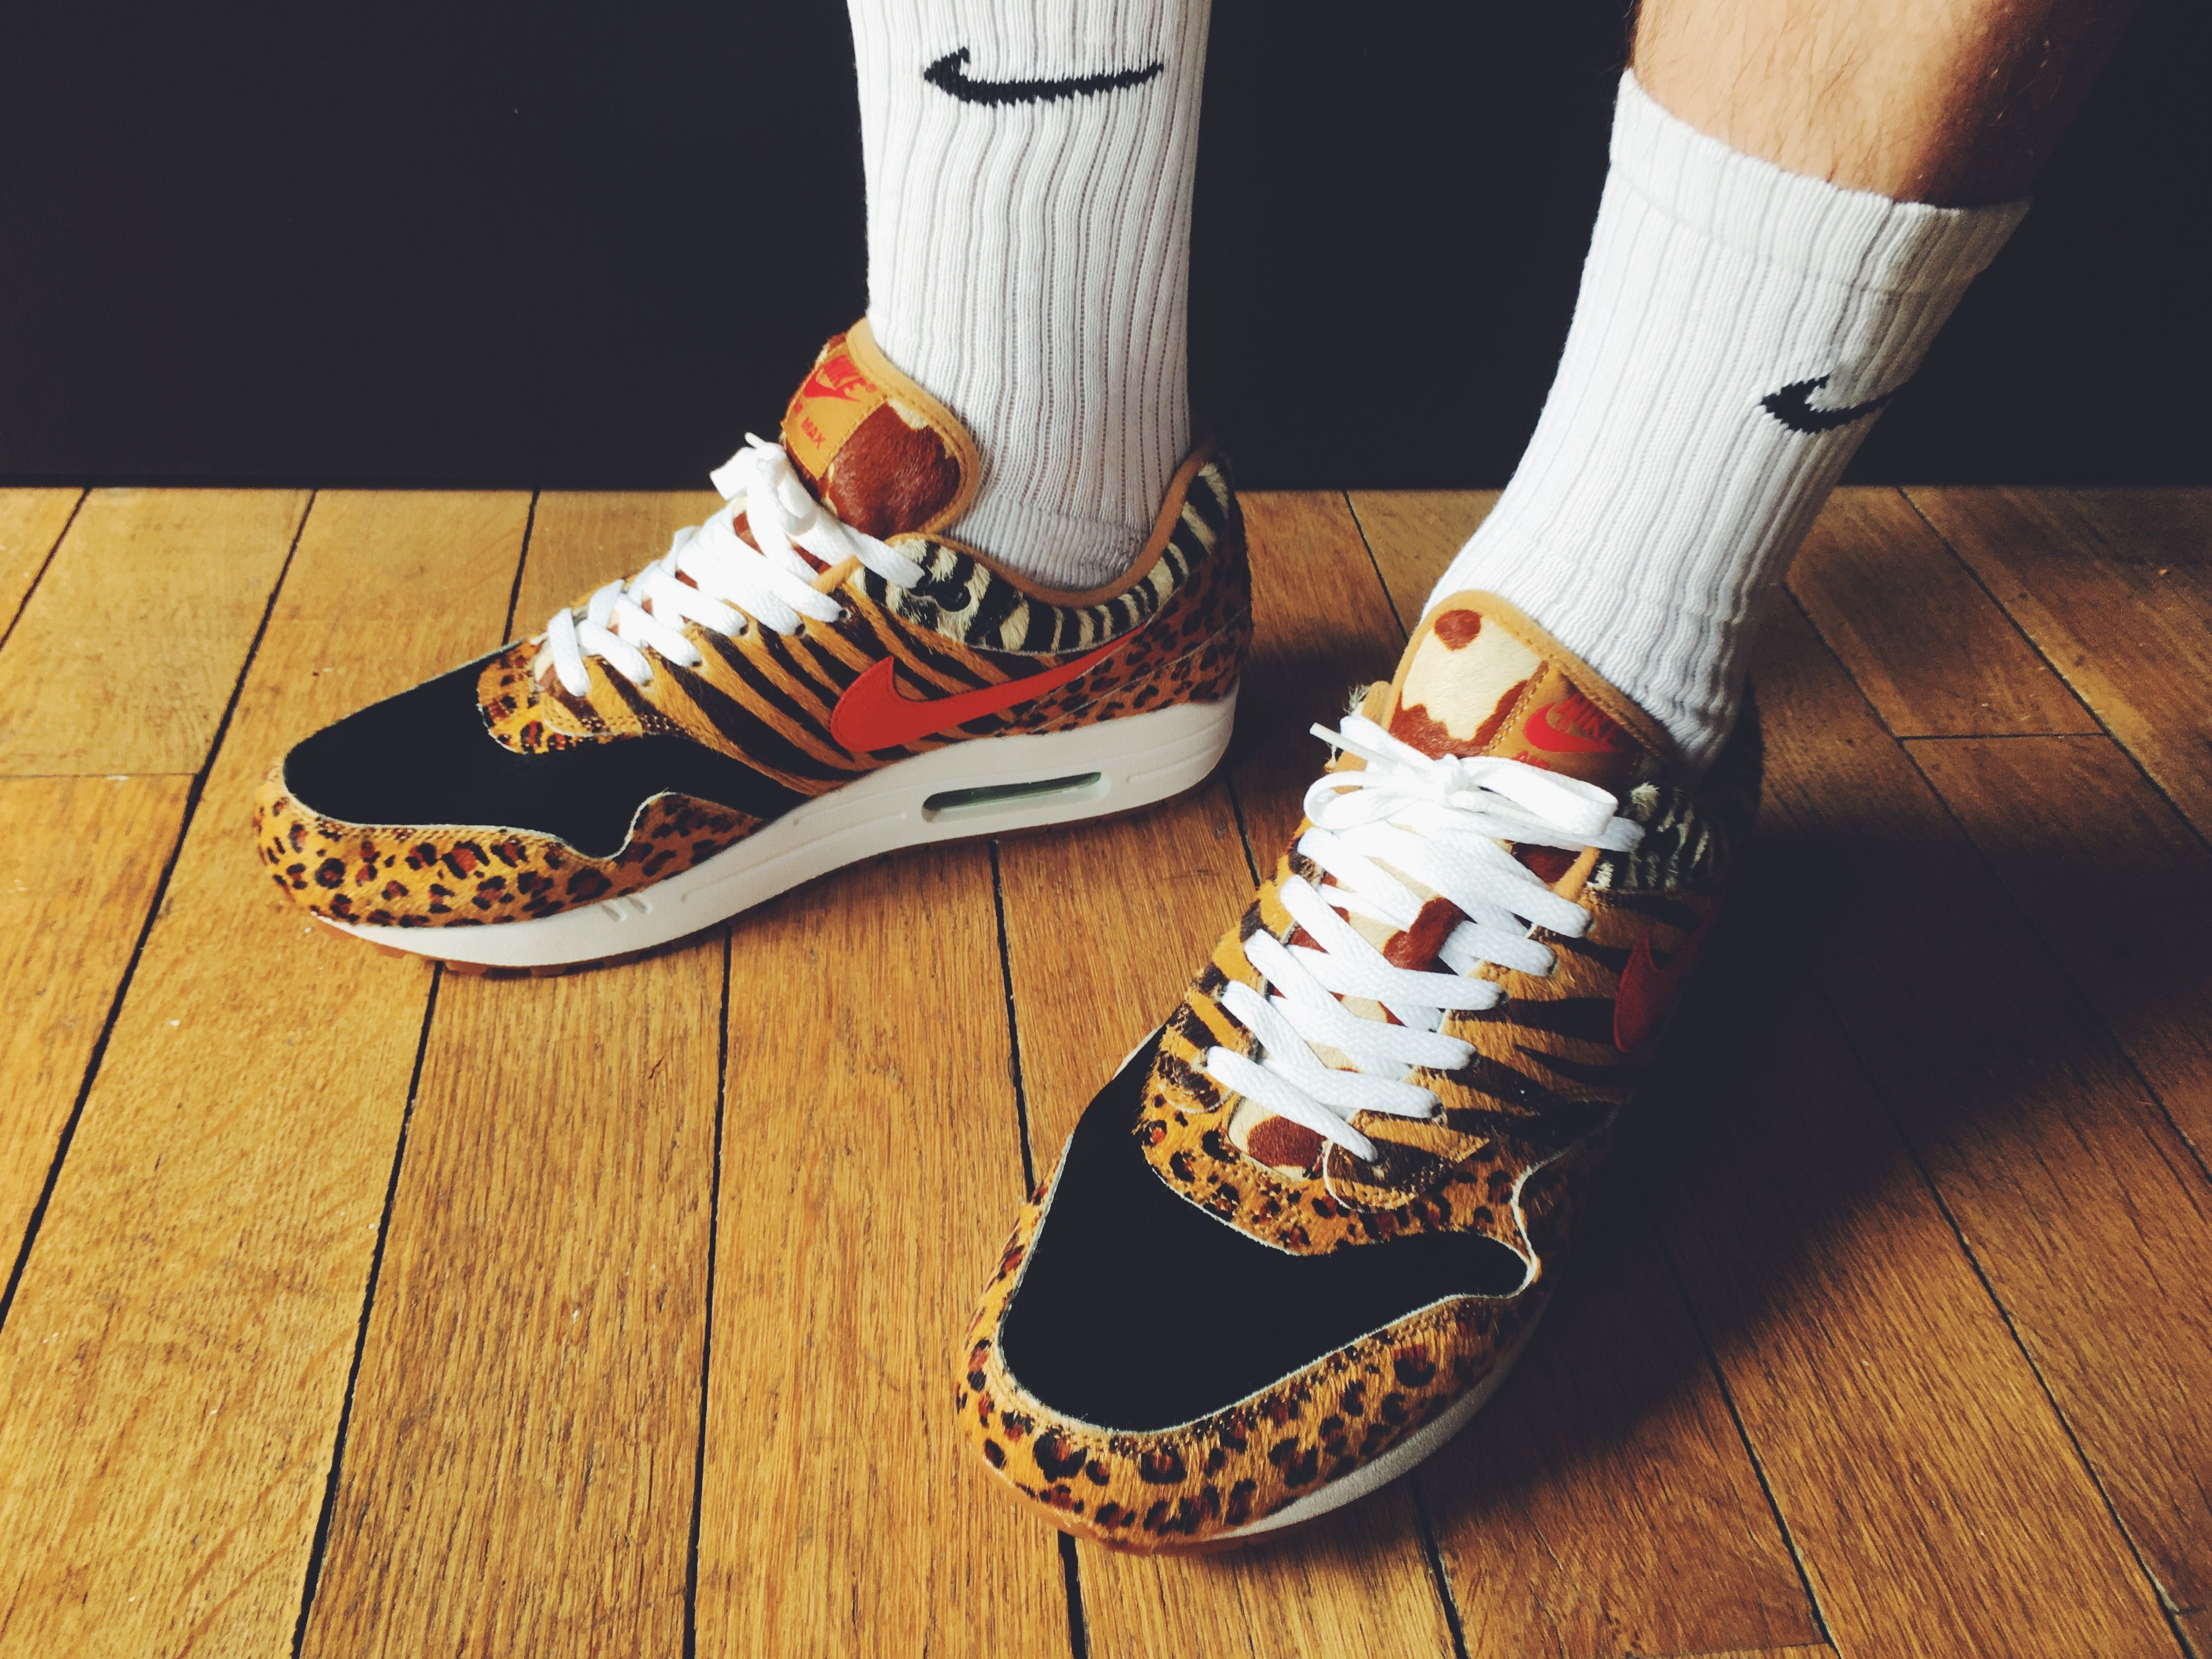 atmos x Nike Air Max 1 Beast Pack 2.0 Closer Look